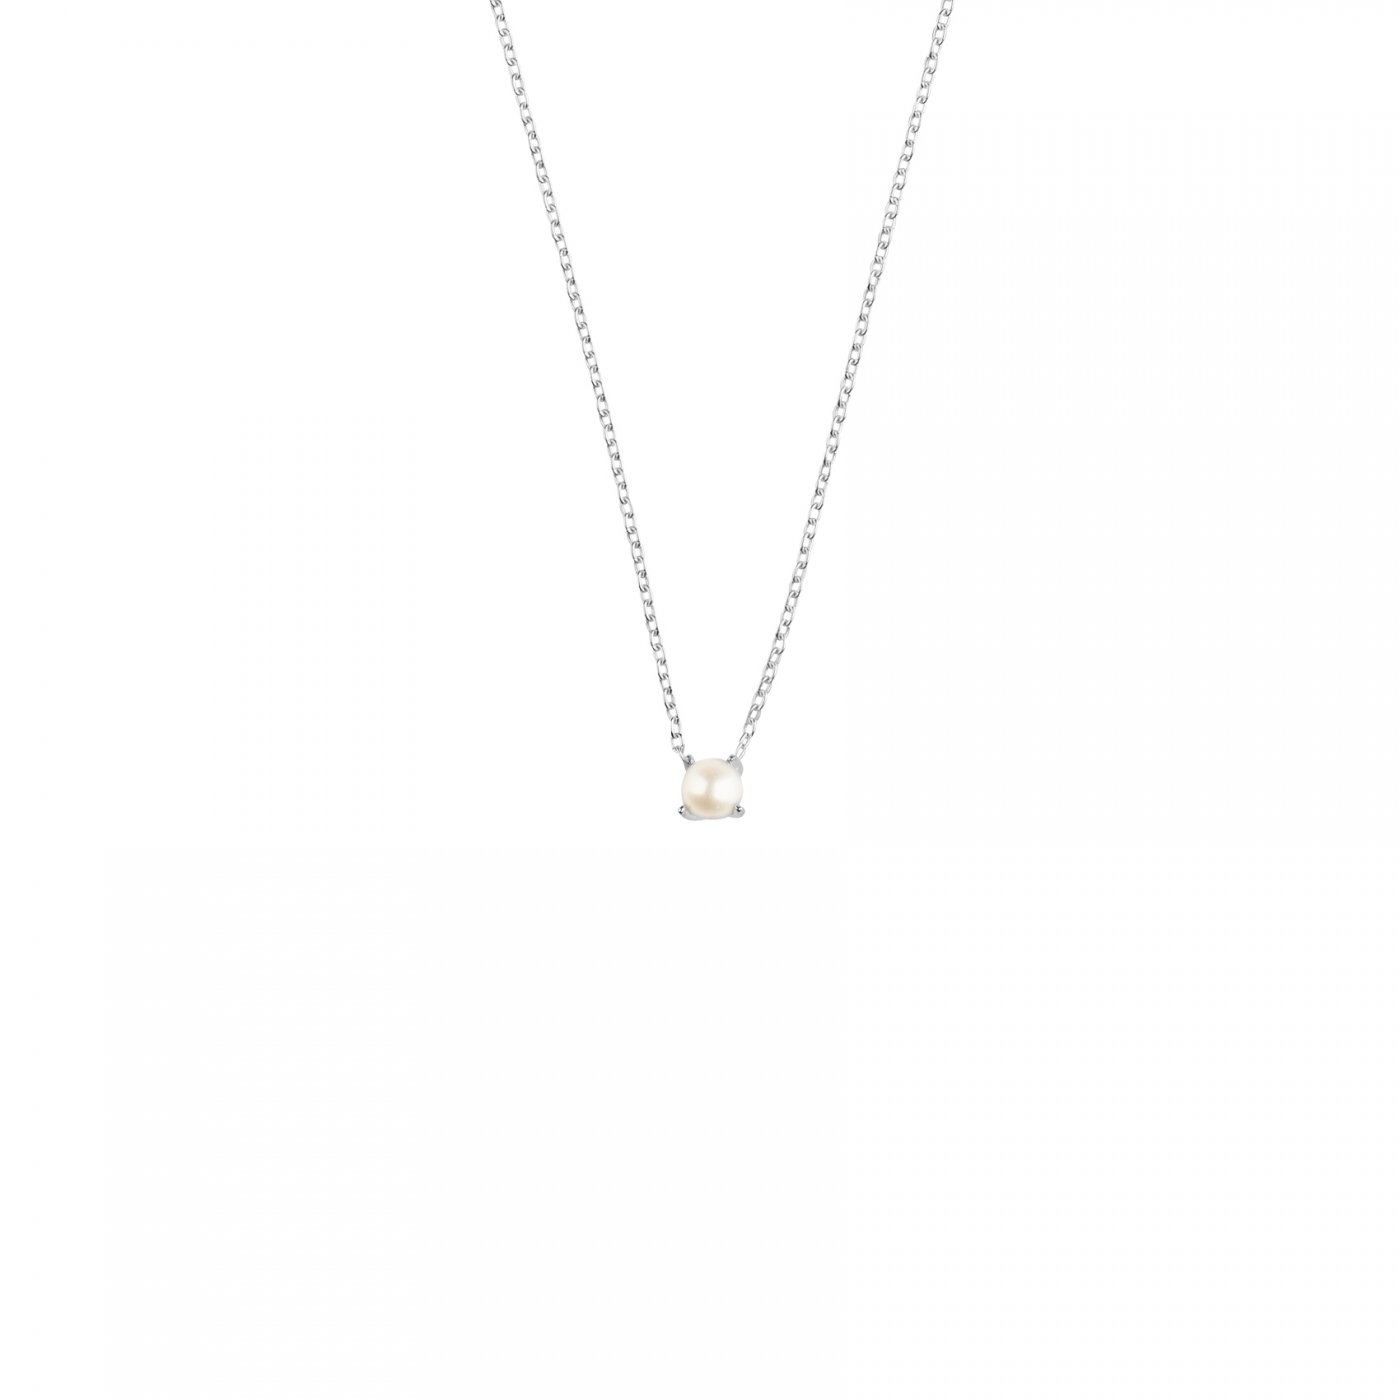 petite-pearl-necklace-zoom-1400x1400